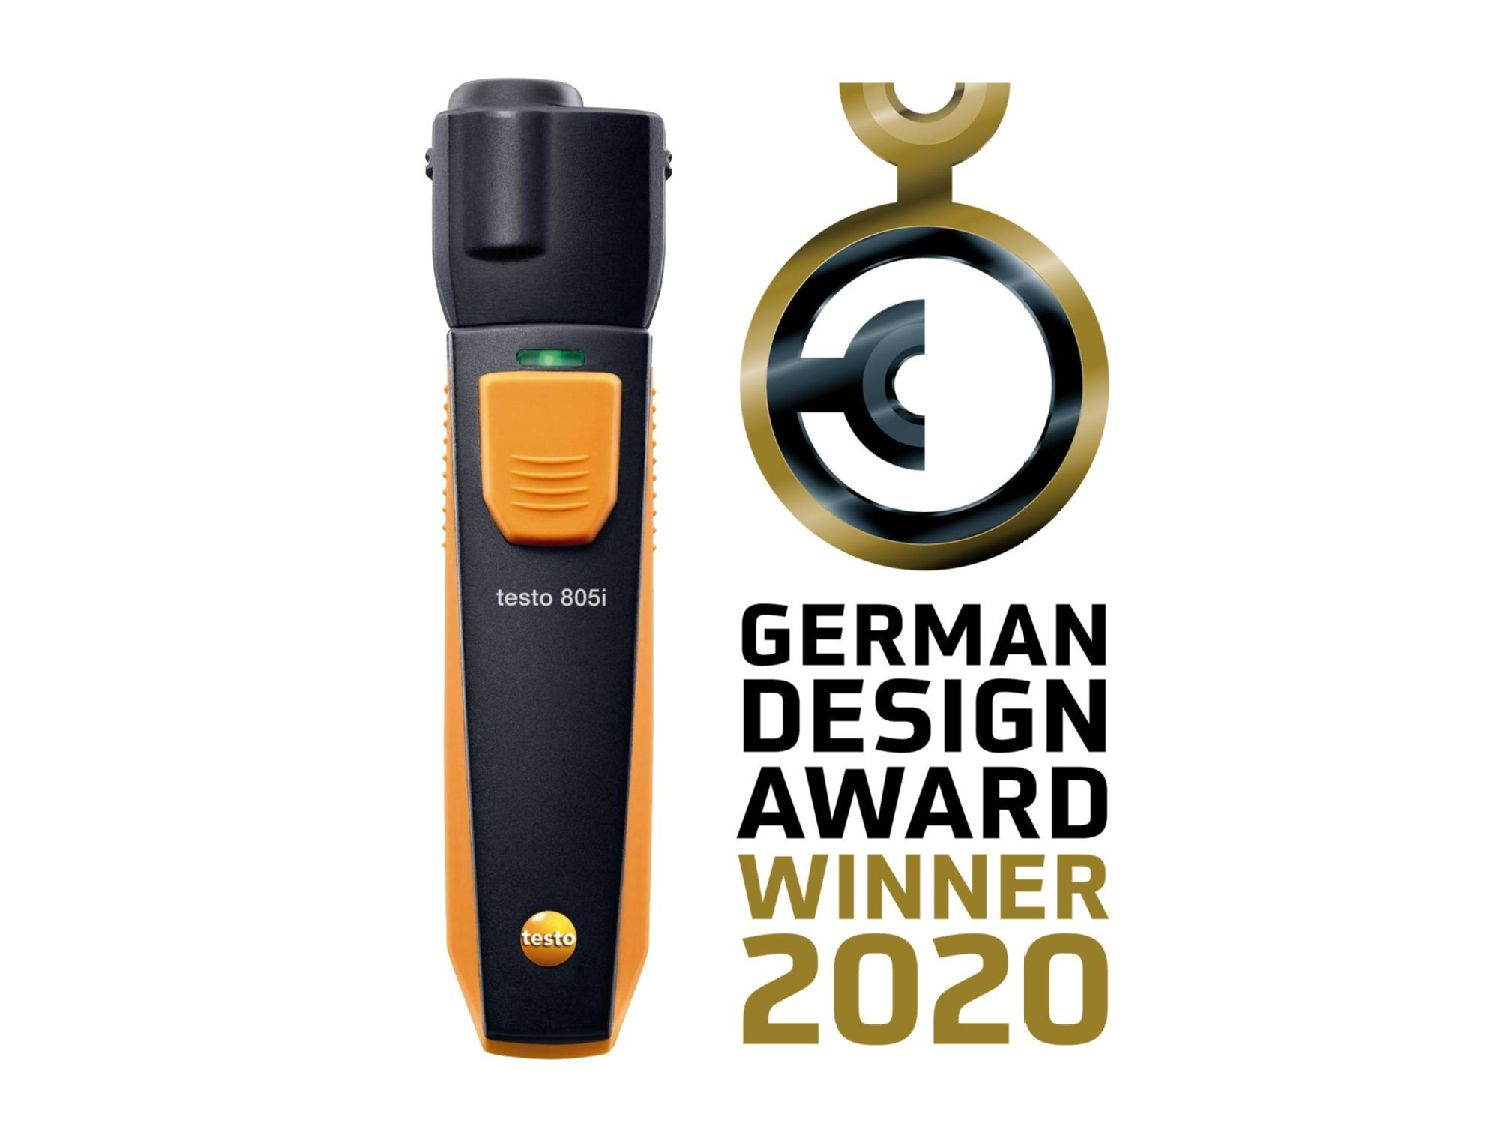 testo 805i German Design Award